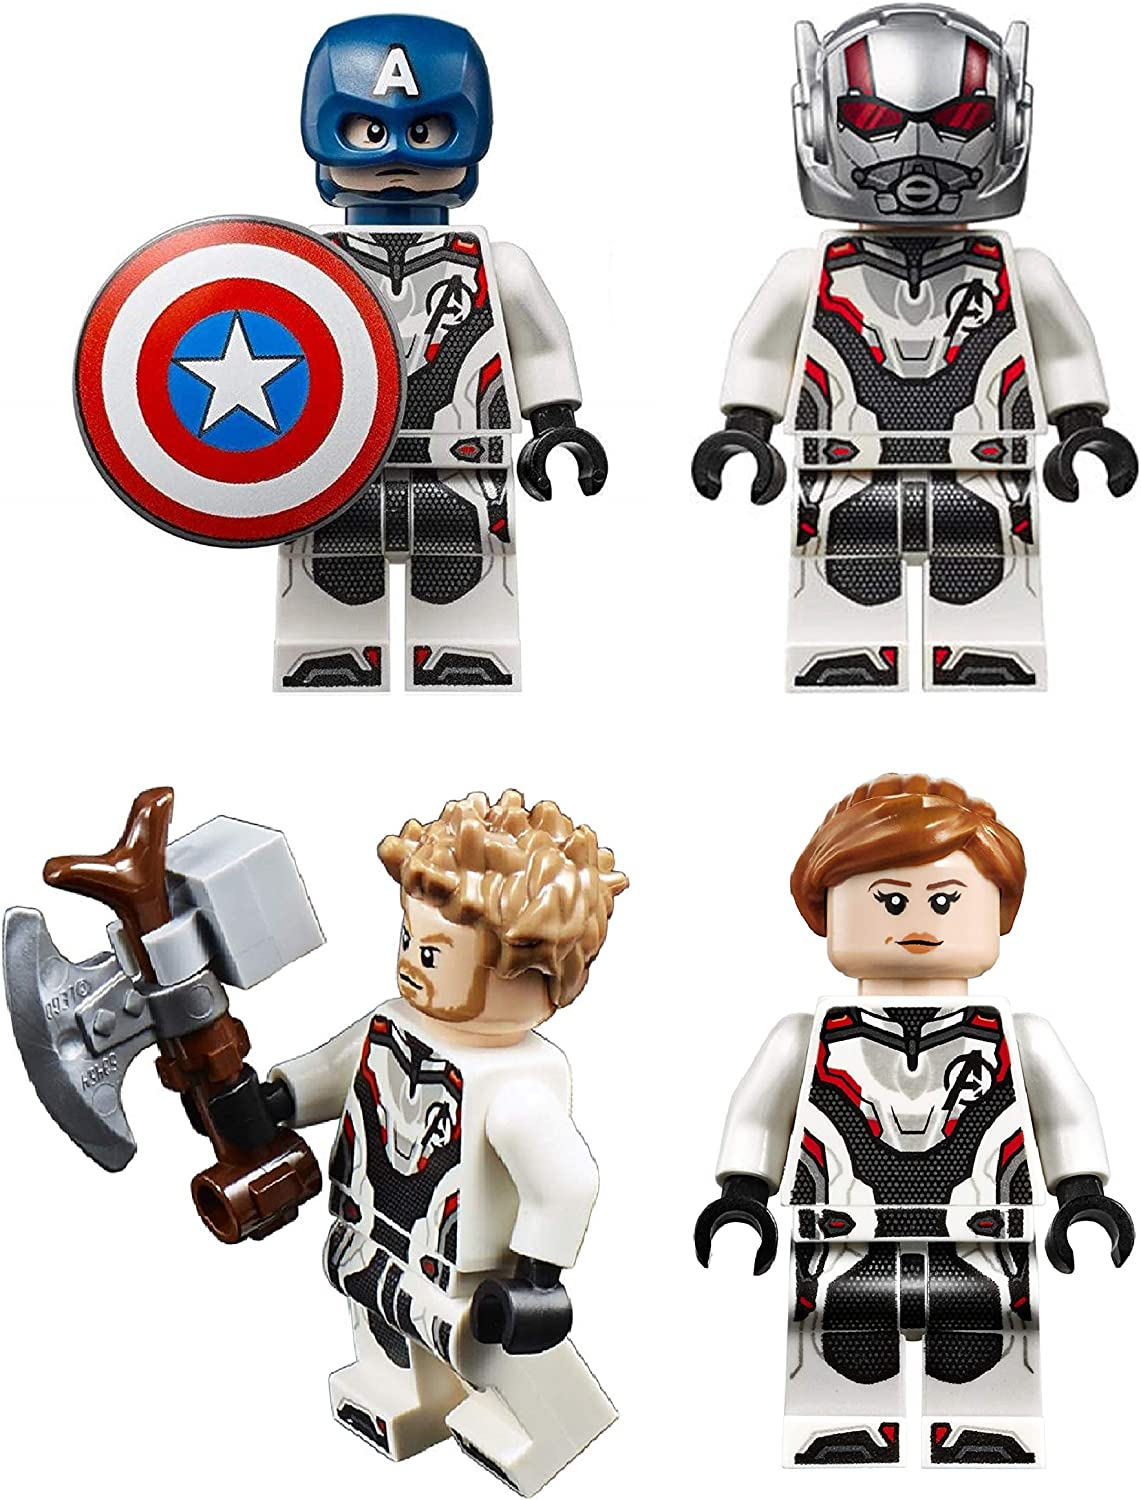 LEGO Super Heroes: Black Widow and Hawkeye - Avengers